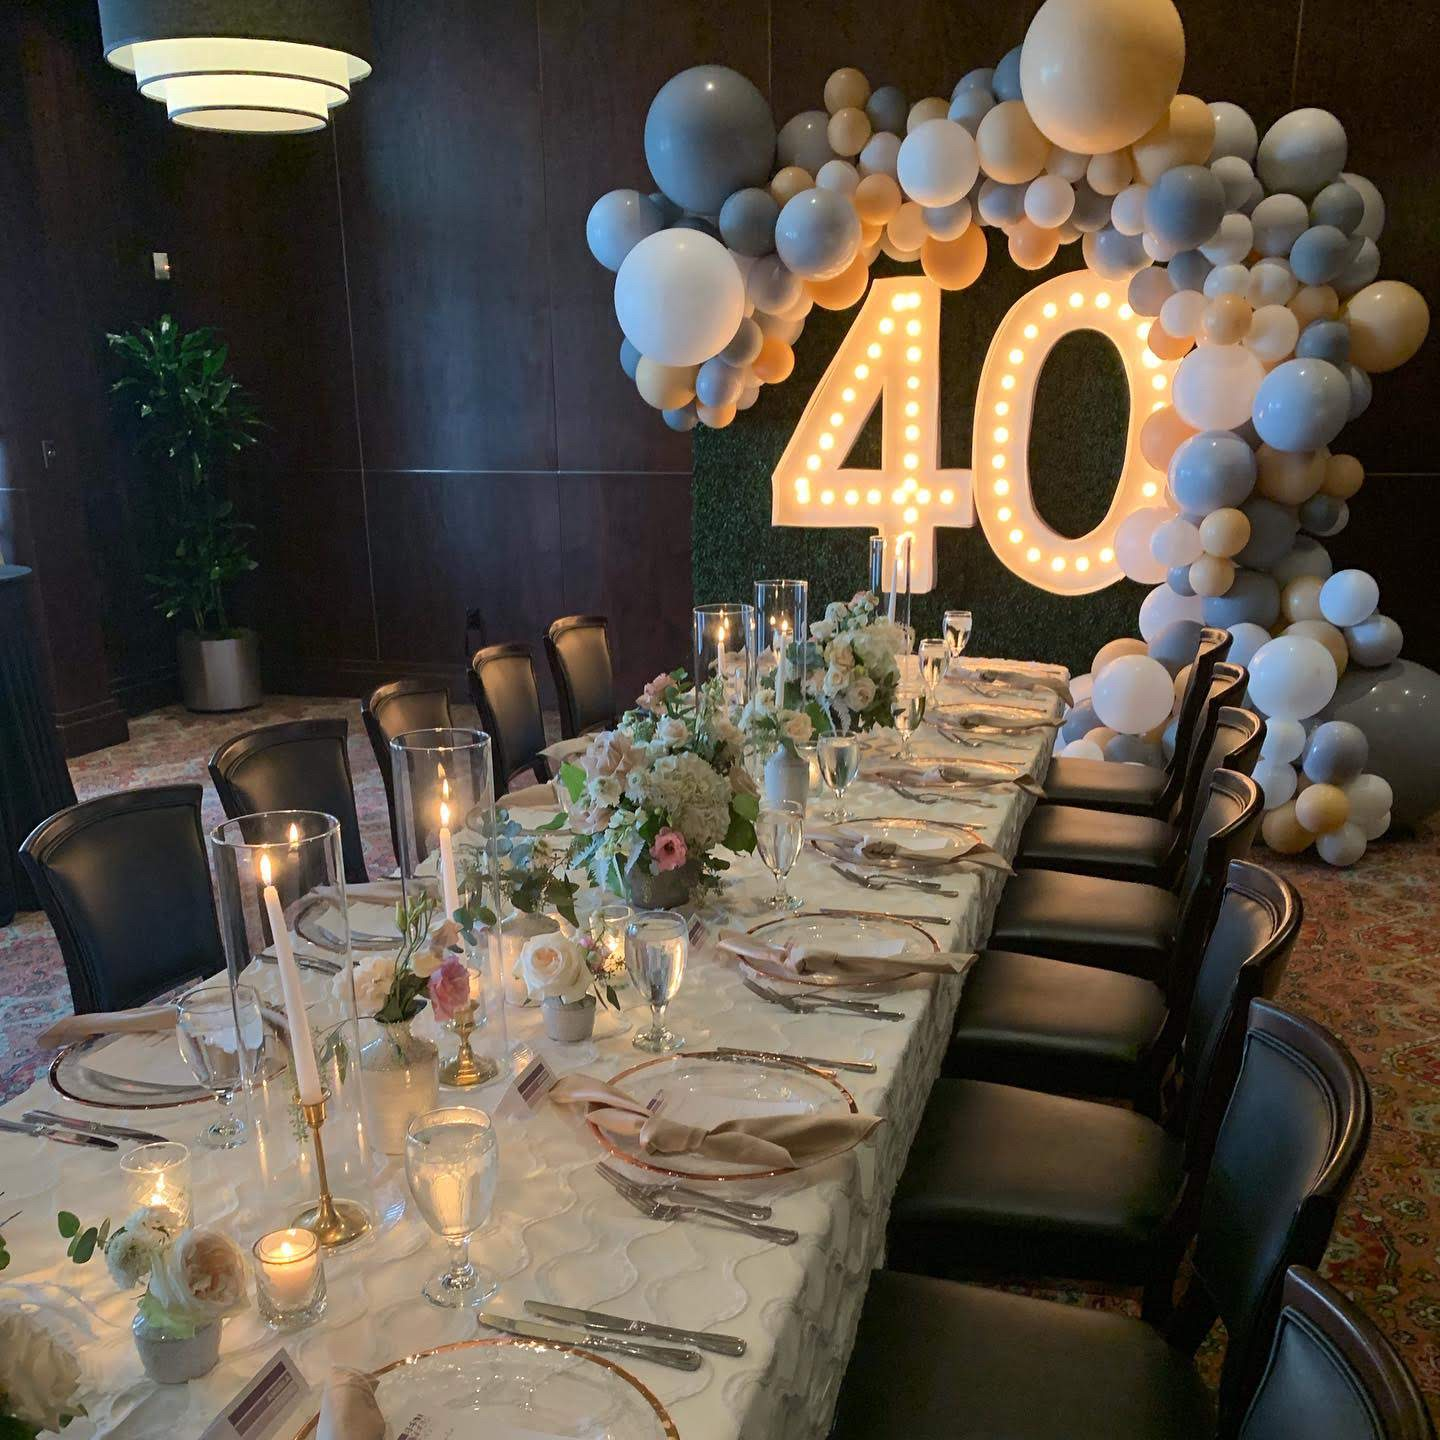 Truluck's Woodlands private dining event for a 40th birthday celebration. This includes white and cream linens with gold accents to include gold rimmed table chargers, gold candle sticks encased in glass with white taper candles. On the back wall is a green hedge with 5' lit up